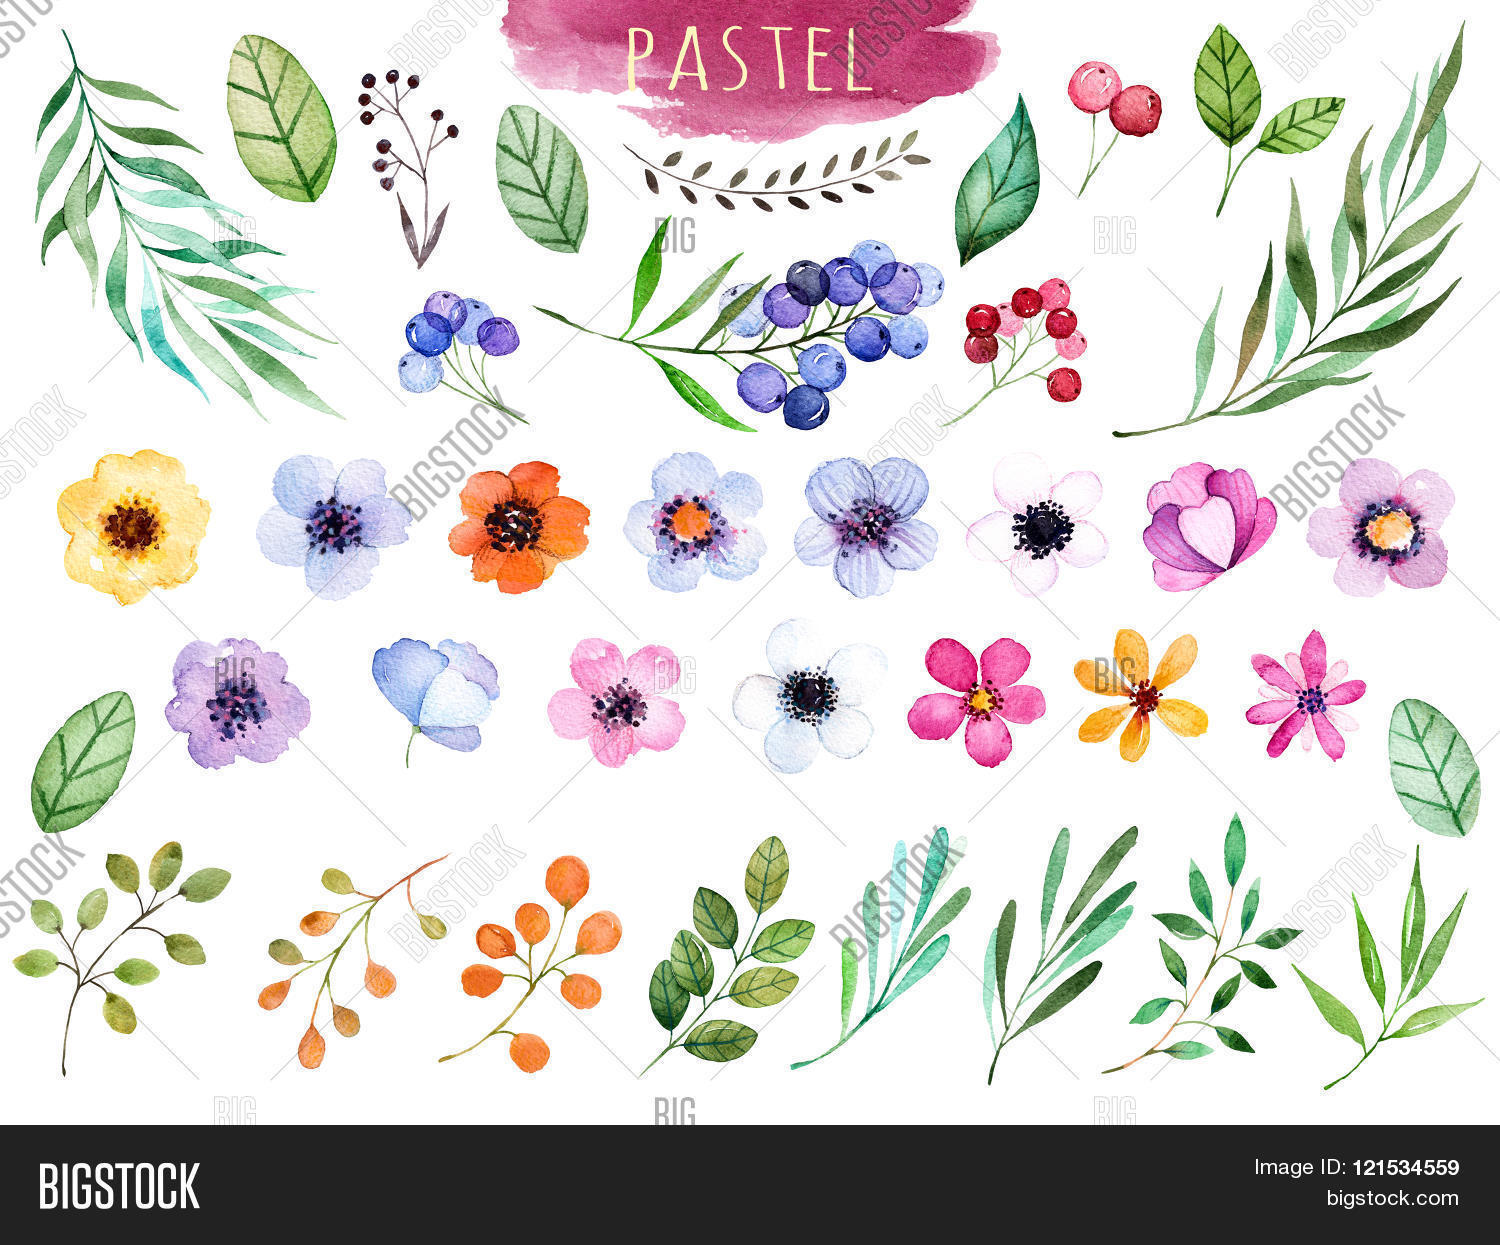 aquarelle,artistic,beautiful,berries,botanical,bouquet,branch,bright,clipart,collection,colors,curl,curve,decoration,drawing,element,eucalyptus,floral,flower,foliage,garden,green,hand-drawn,handpainted,illustrations,image,invitation,isolated,label,lavander,leaf,leaves,multicolor,nature,ornate,painting,pastel,petal,plant,rural,rustic,simple,summer,sunny,watercolor,watercolour,wedding,yellow